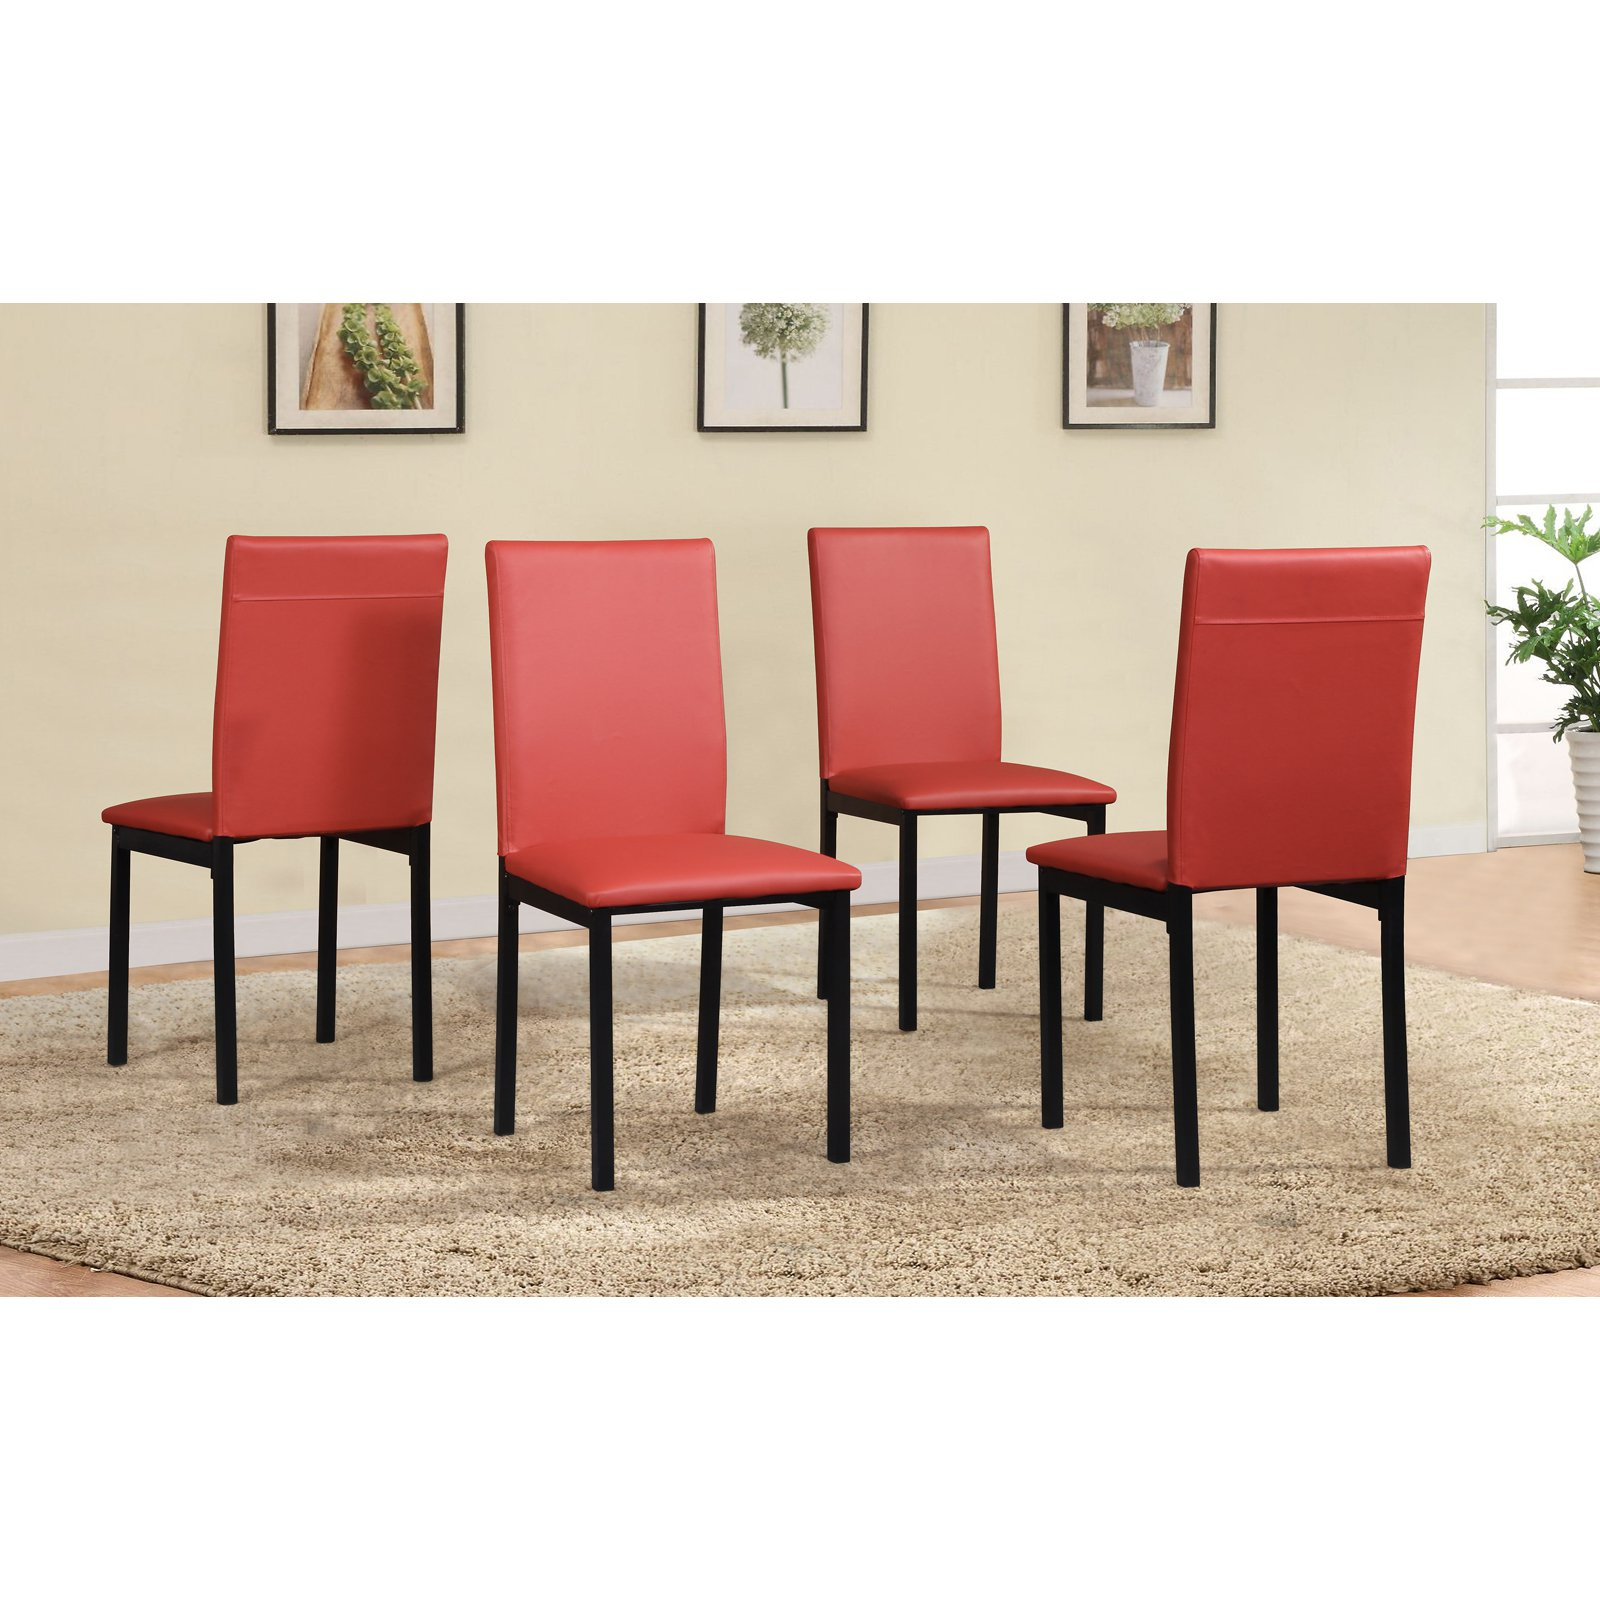 Widely Used Noyes 5 Piece Dining Sets With Regard To Roundhill Furniture Noyes Faux Leather Dining Side Chair – Set Of (View 14 of 20)